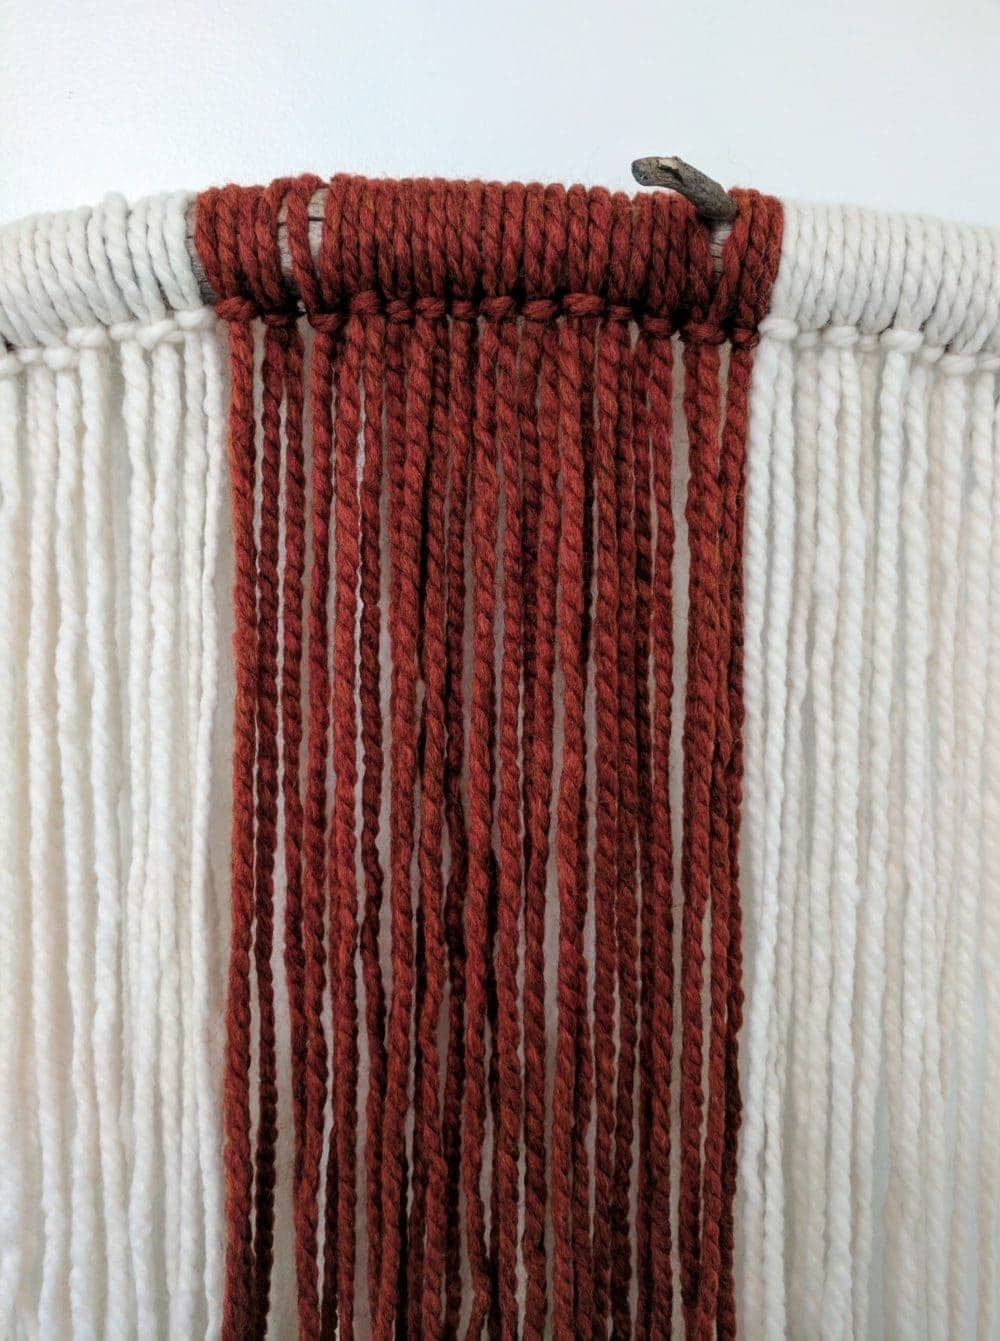 close-up of the DIY wall hanging yarn